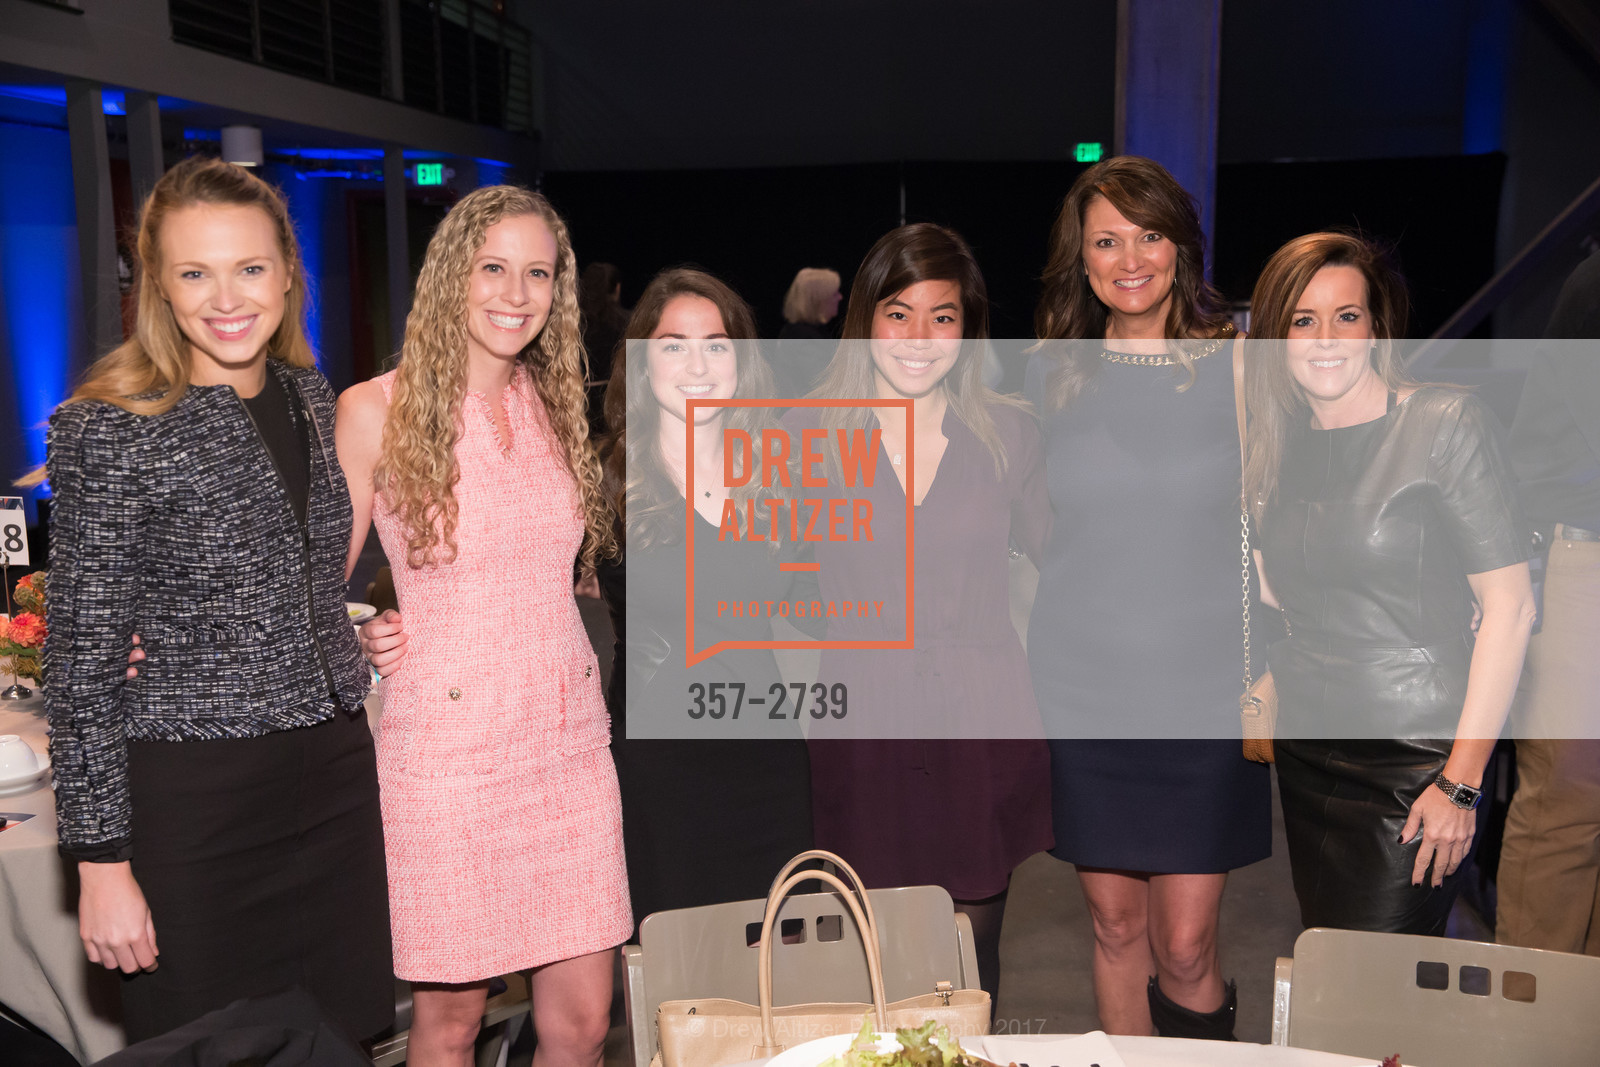 Carly Webster, Kerry Deichen, Laura Posylkin, Alice Zheng, Tracy Webster, Kirsten Fell, Photo #357-2739